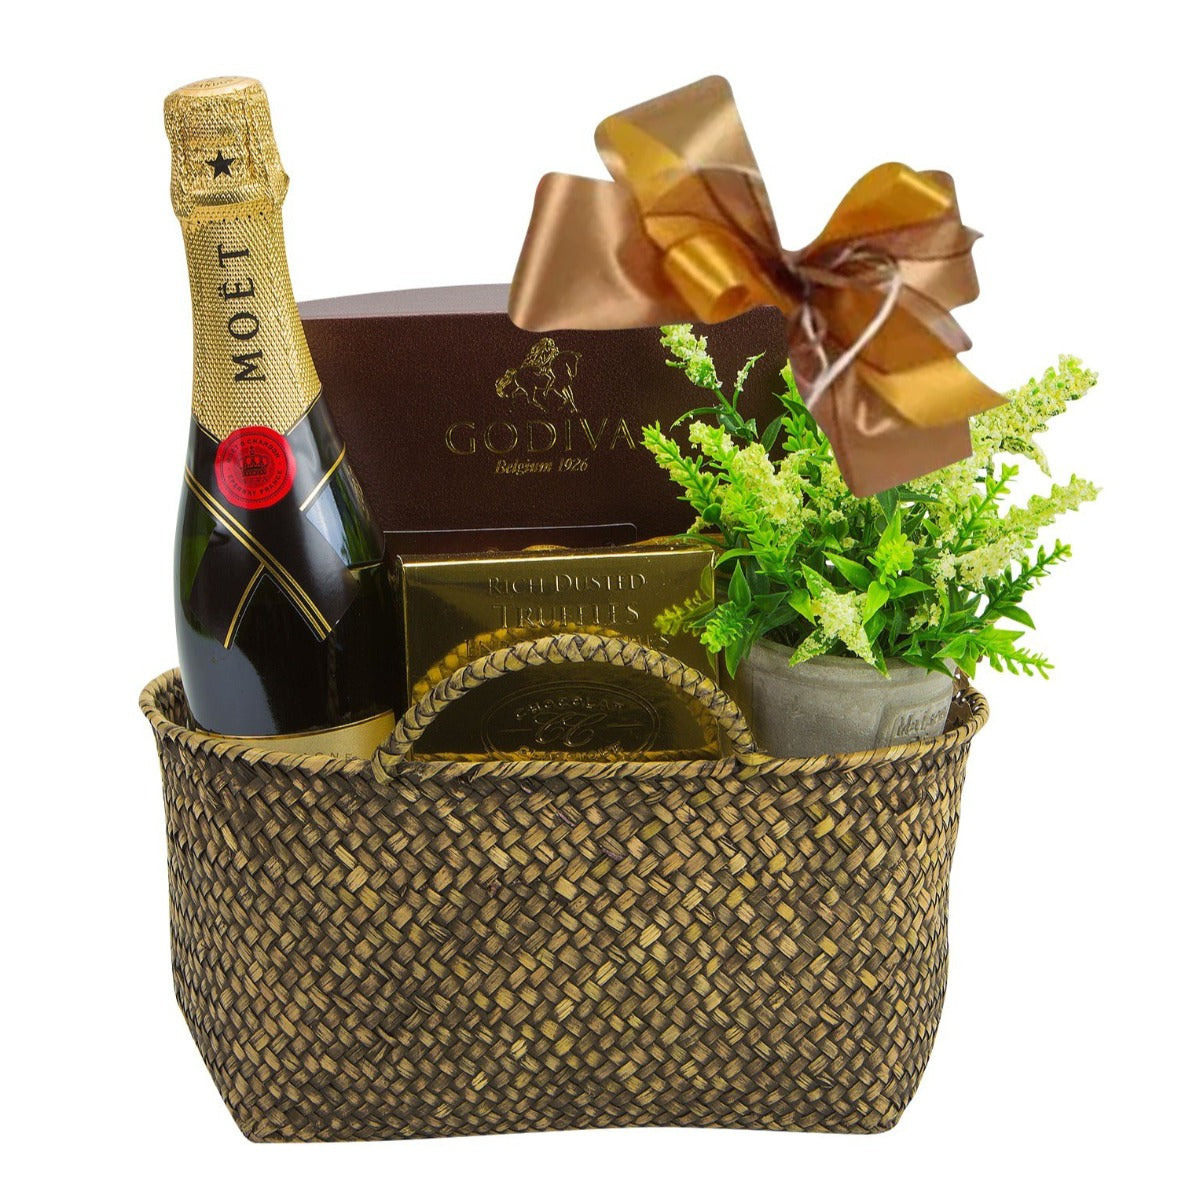 Royal Champagne Gift Basket